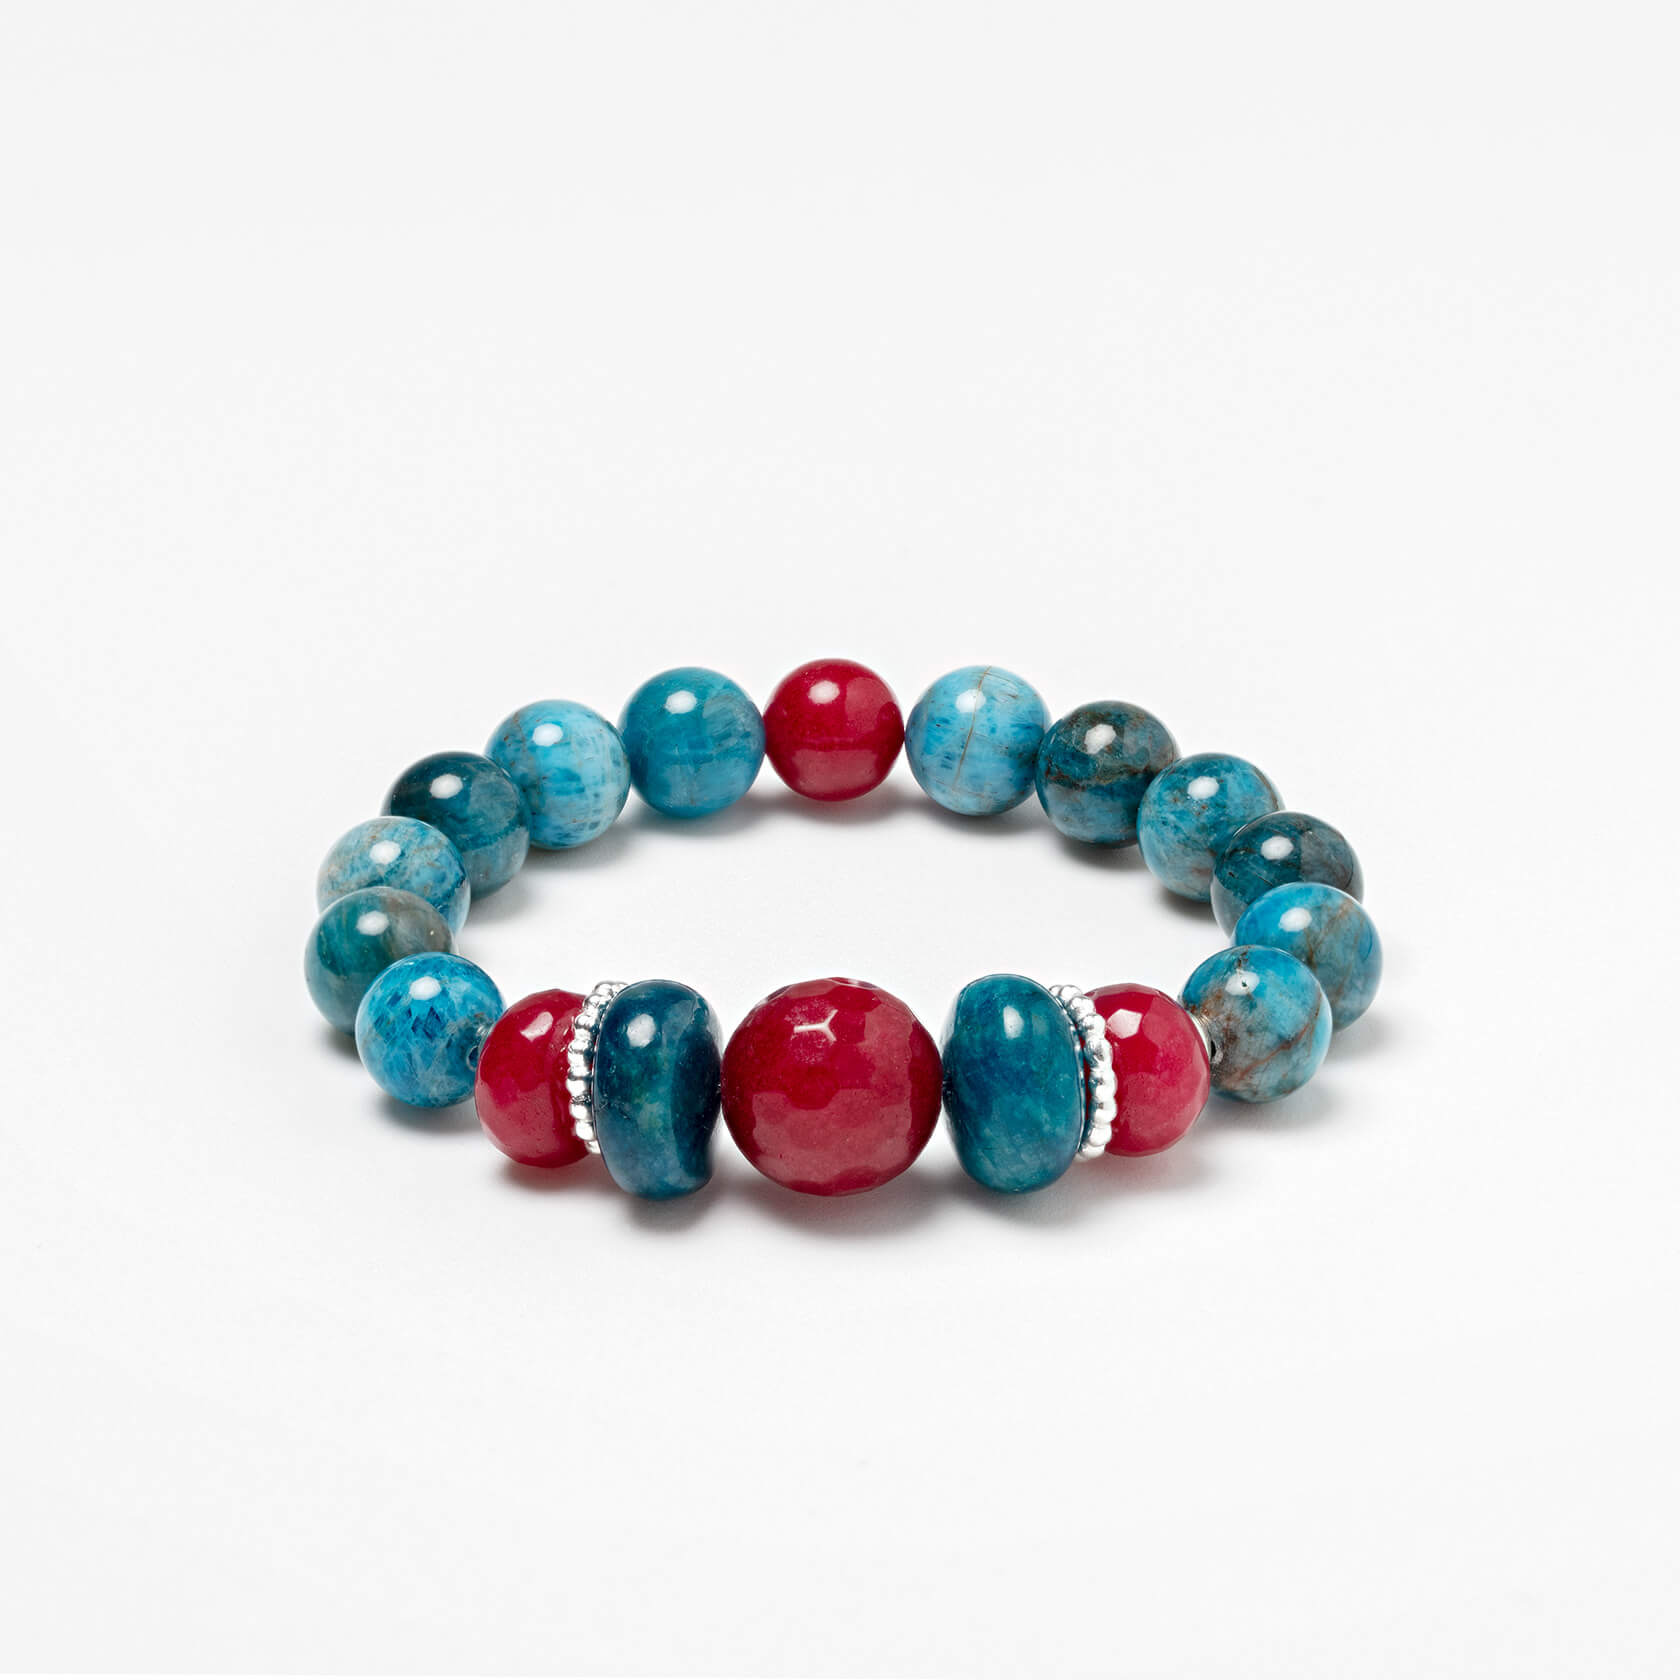 Apatite bracelet with agate